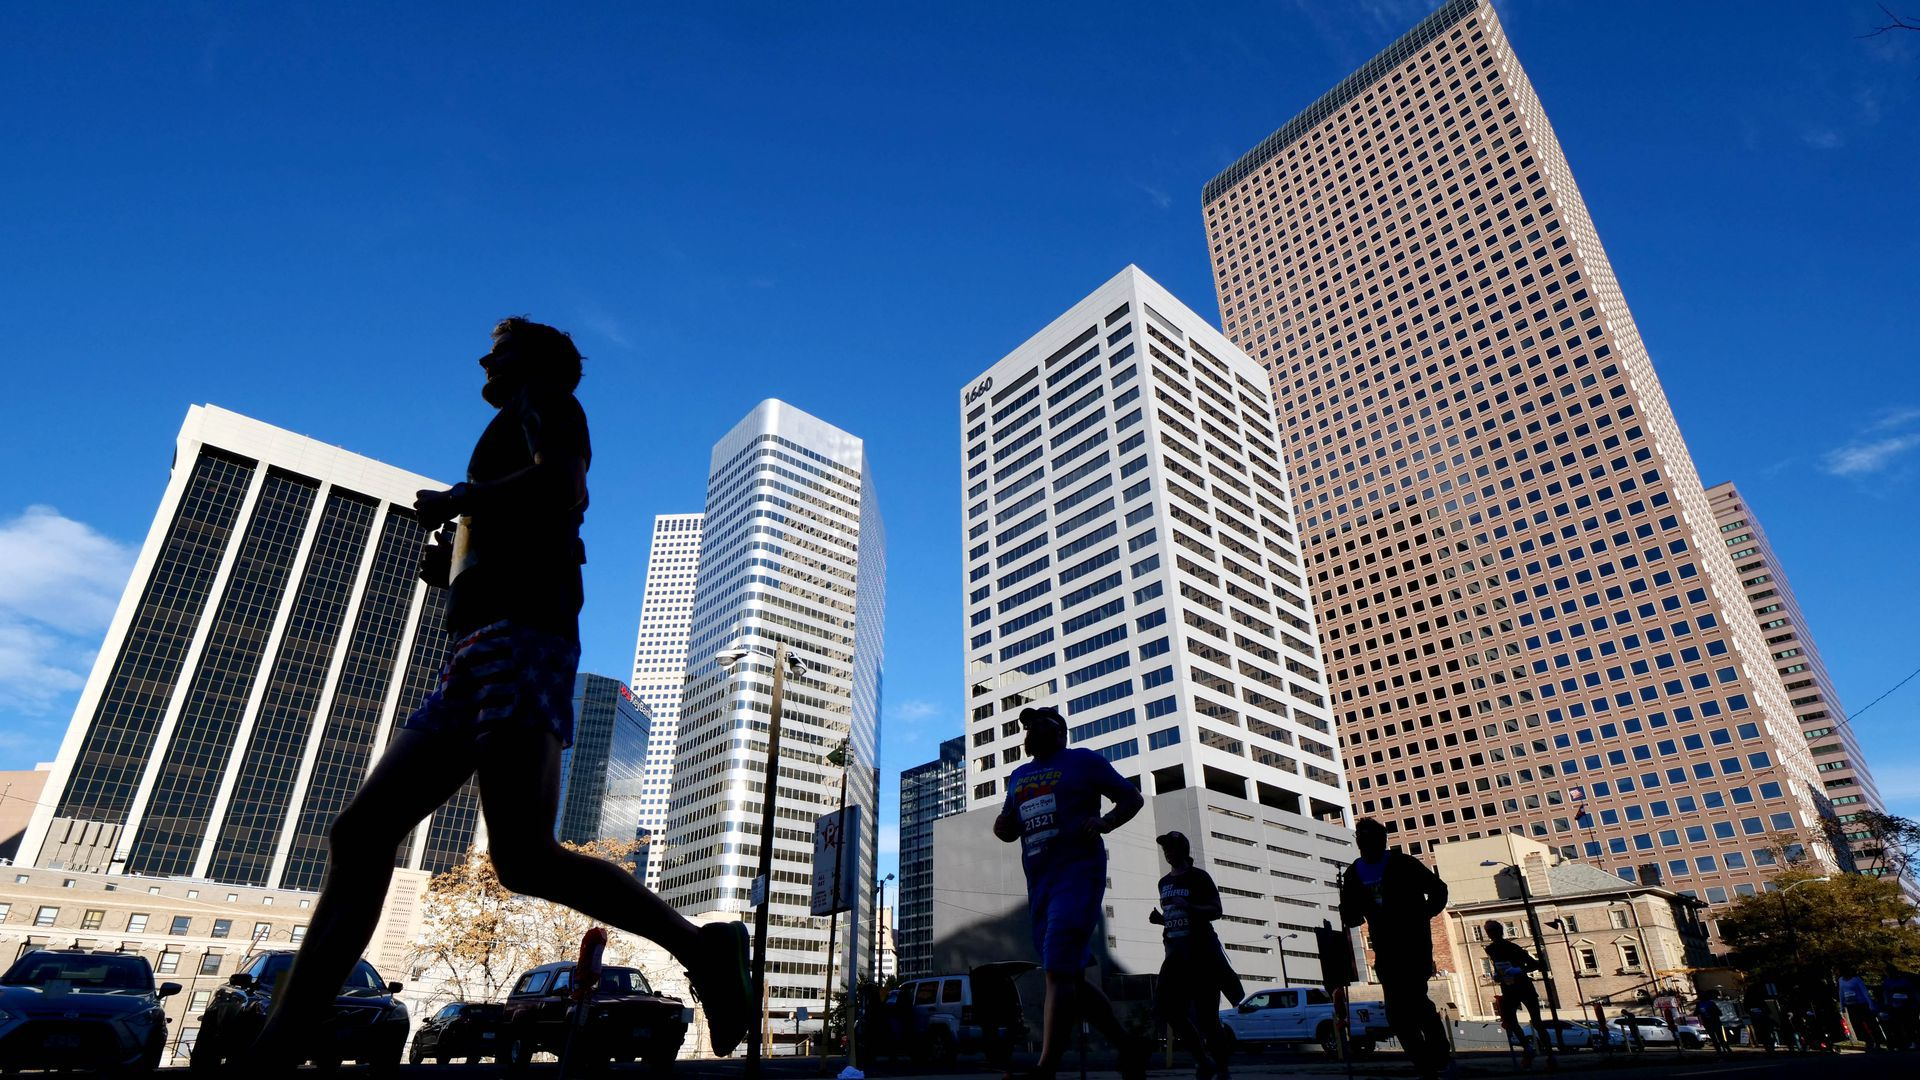 Picture of buildings in downtown Denver taken while runners were in front of the camera